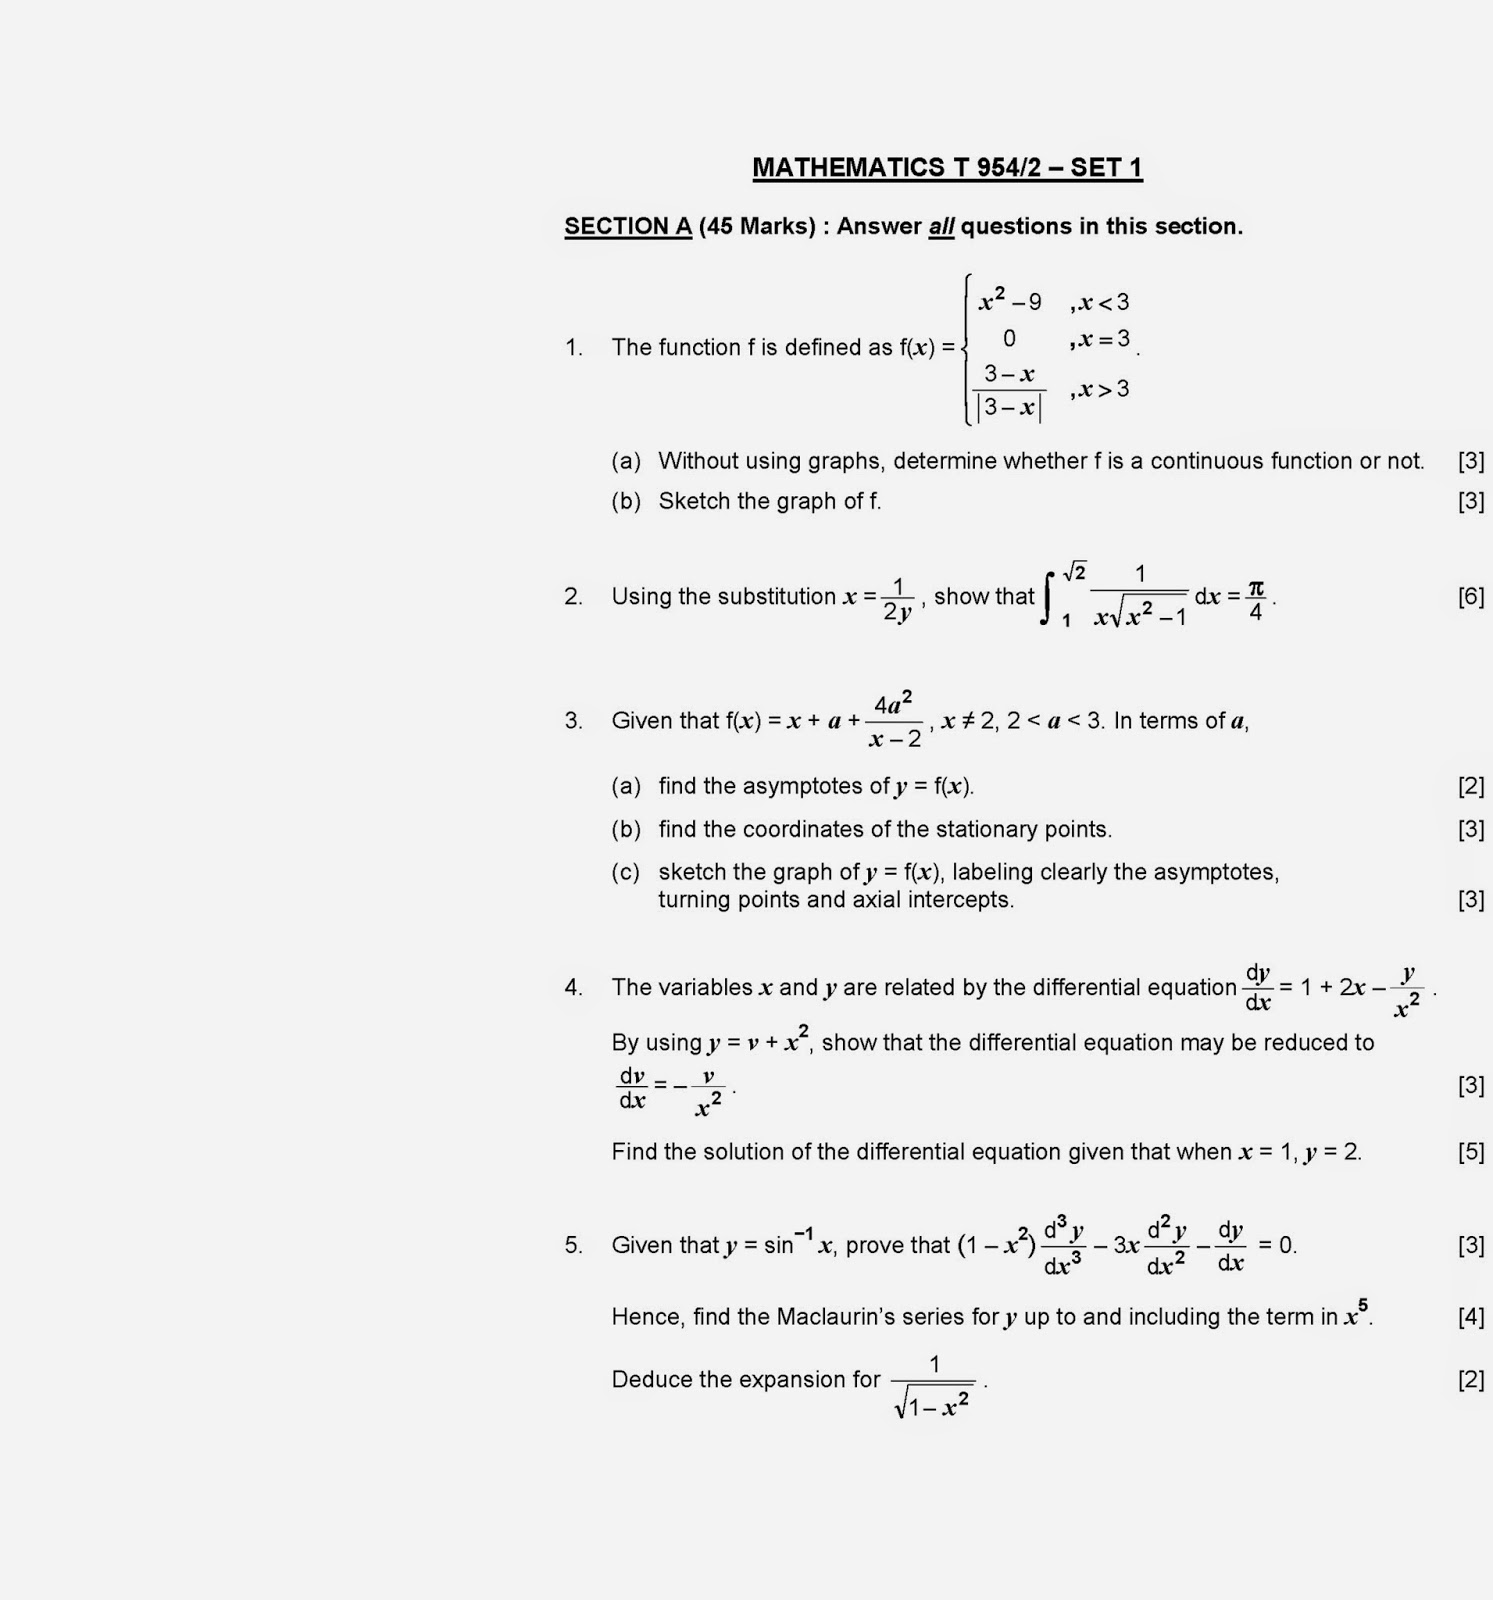 maths coursework questions Maths coursework writing simply put, maths, or mathematics, is the study of quantity, structure and change in abstract space the goal of mathematicians is to formulate and develop new conjectures that attempt to understand the nature of reality through developing and testing mathematical proofs.